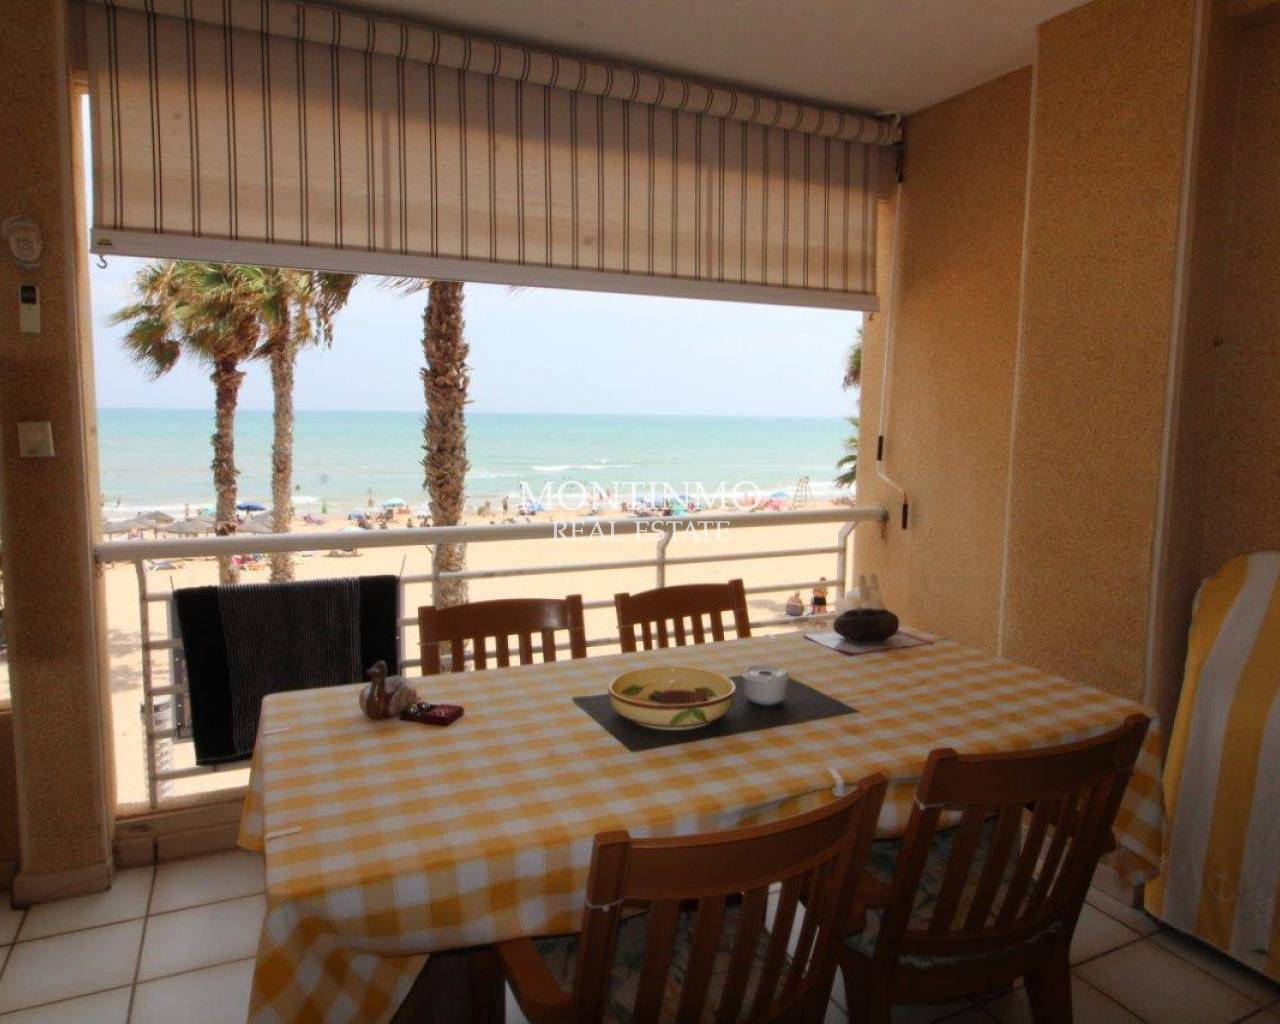 Sale - Appartement - La Mata - Dunamar